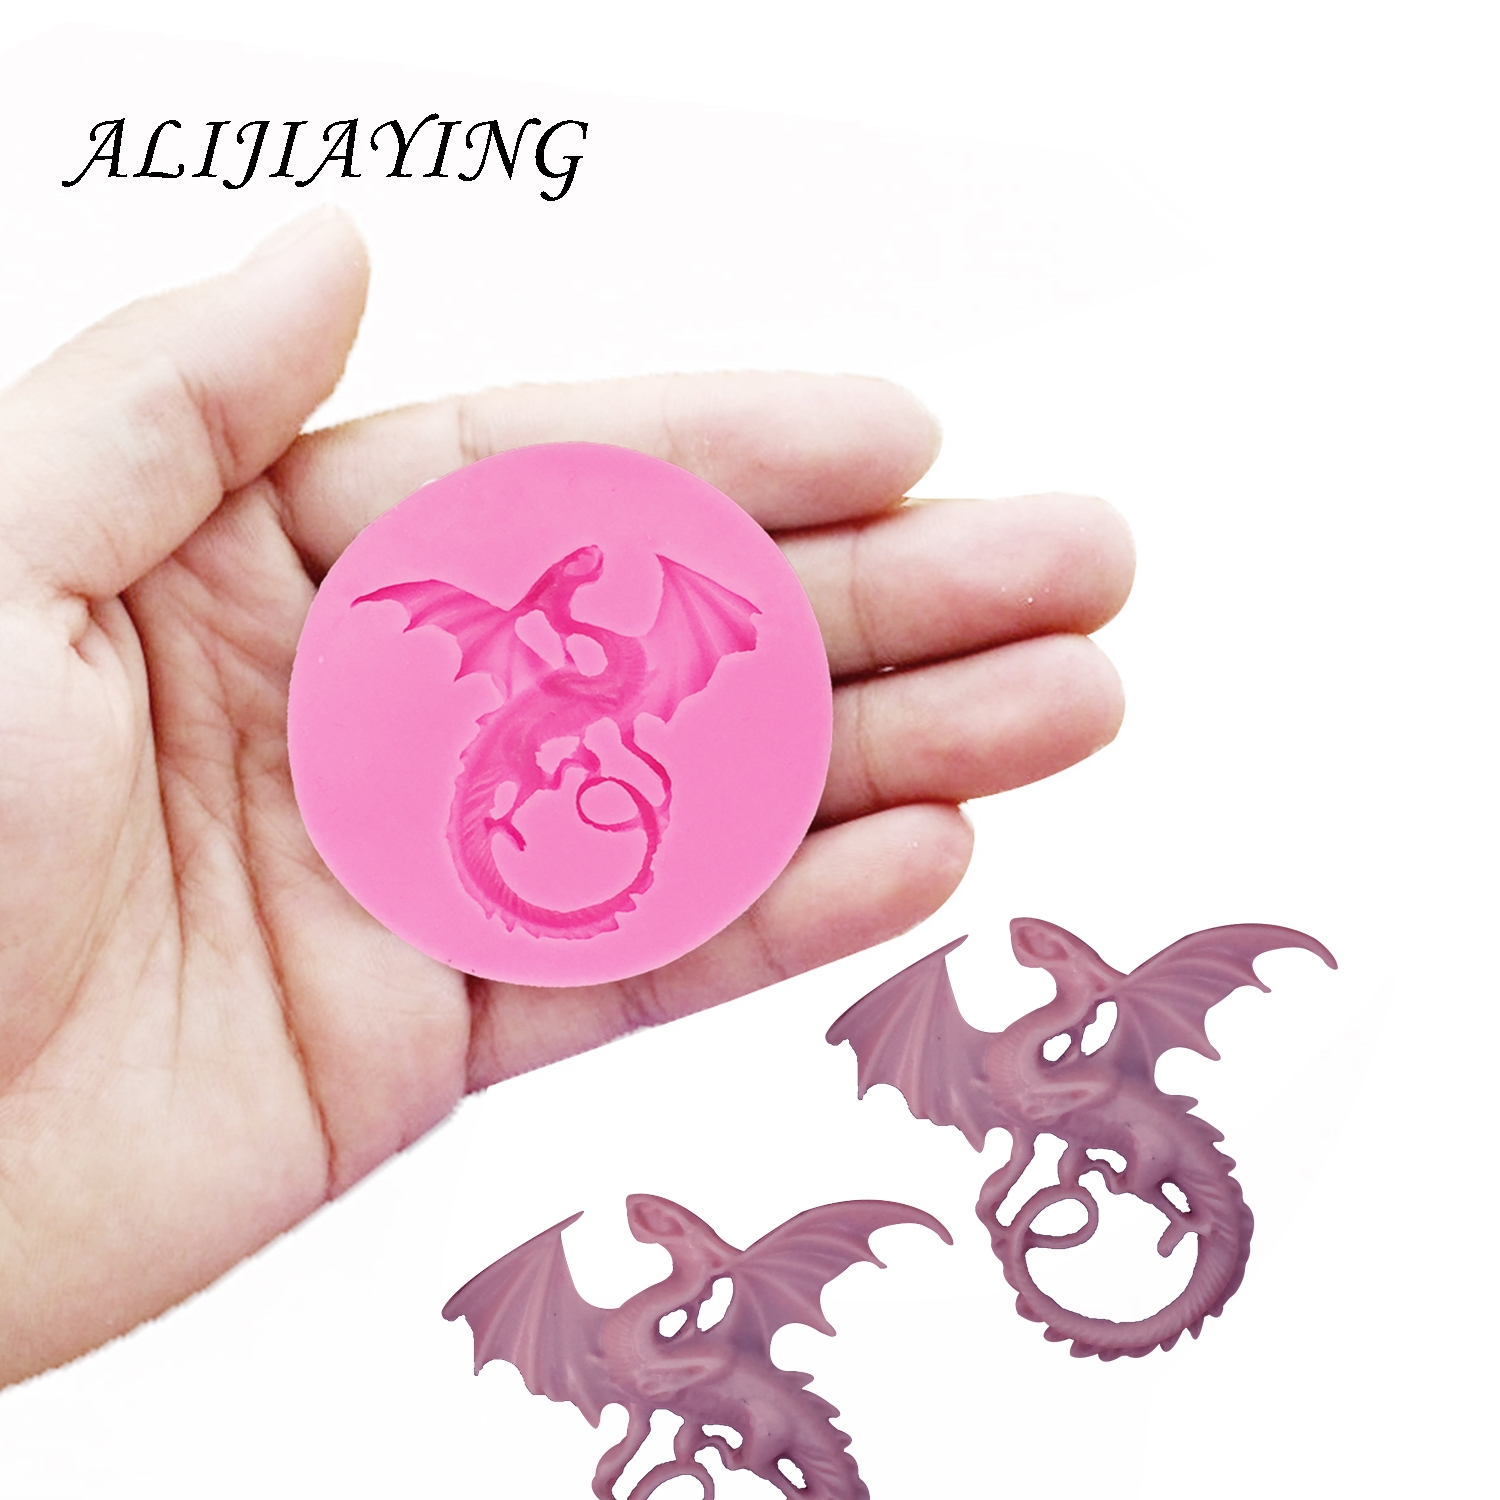 Cartoon Flying Dragon Silicone Molds For 3D Crafts Cake Decorating Tools Fondant Chocolate Molds Sugarpaste Bakeware DY0043